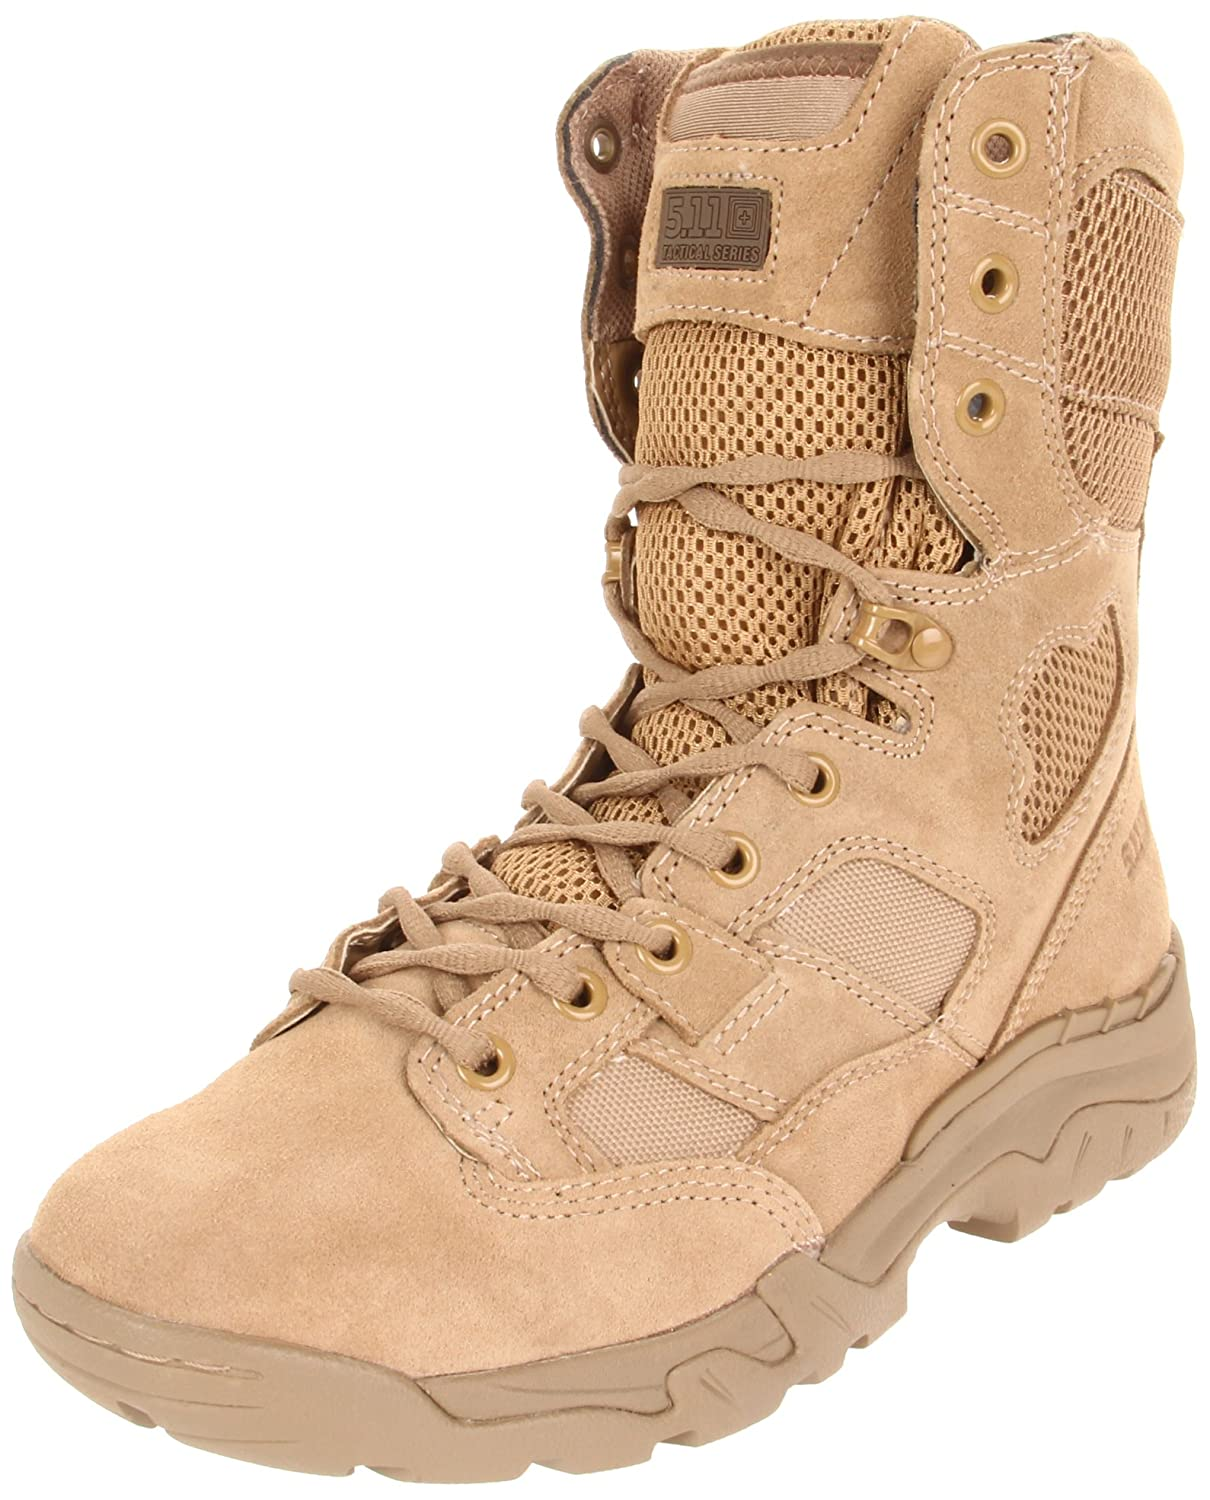 5.11 Men's Taclite 8In avvio-U, Coyote Suede, 4 D(M) US